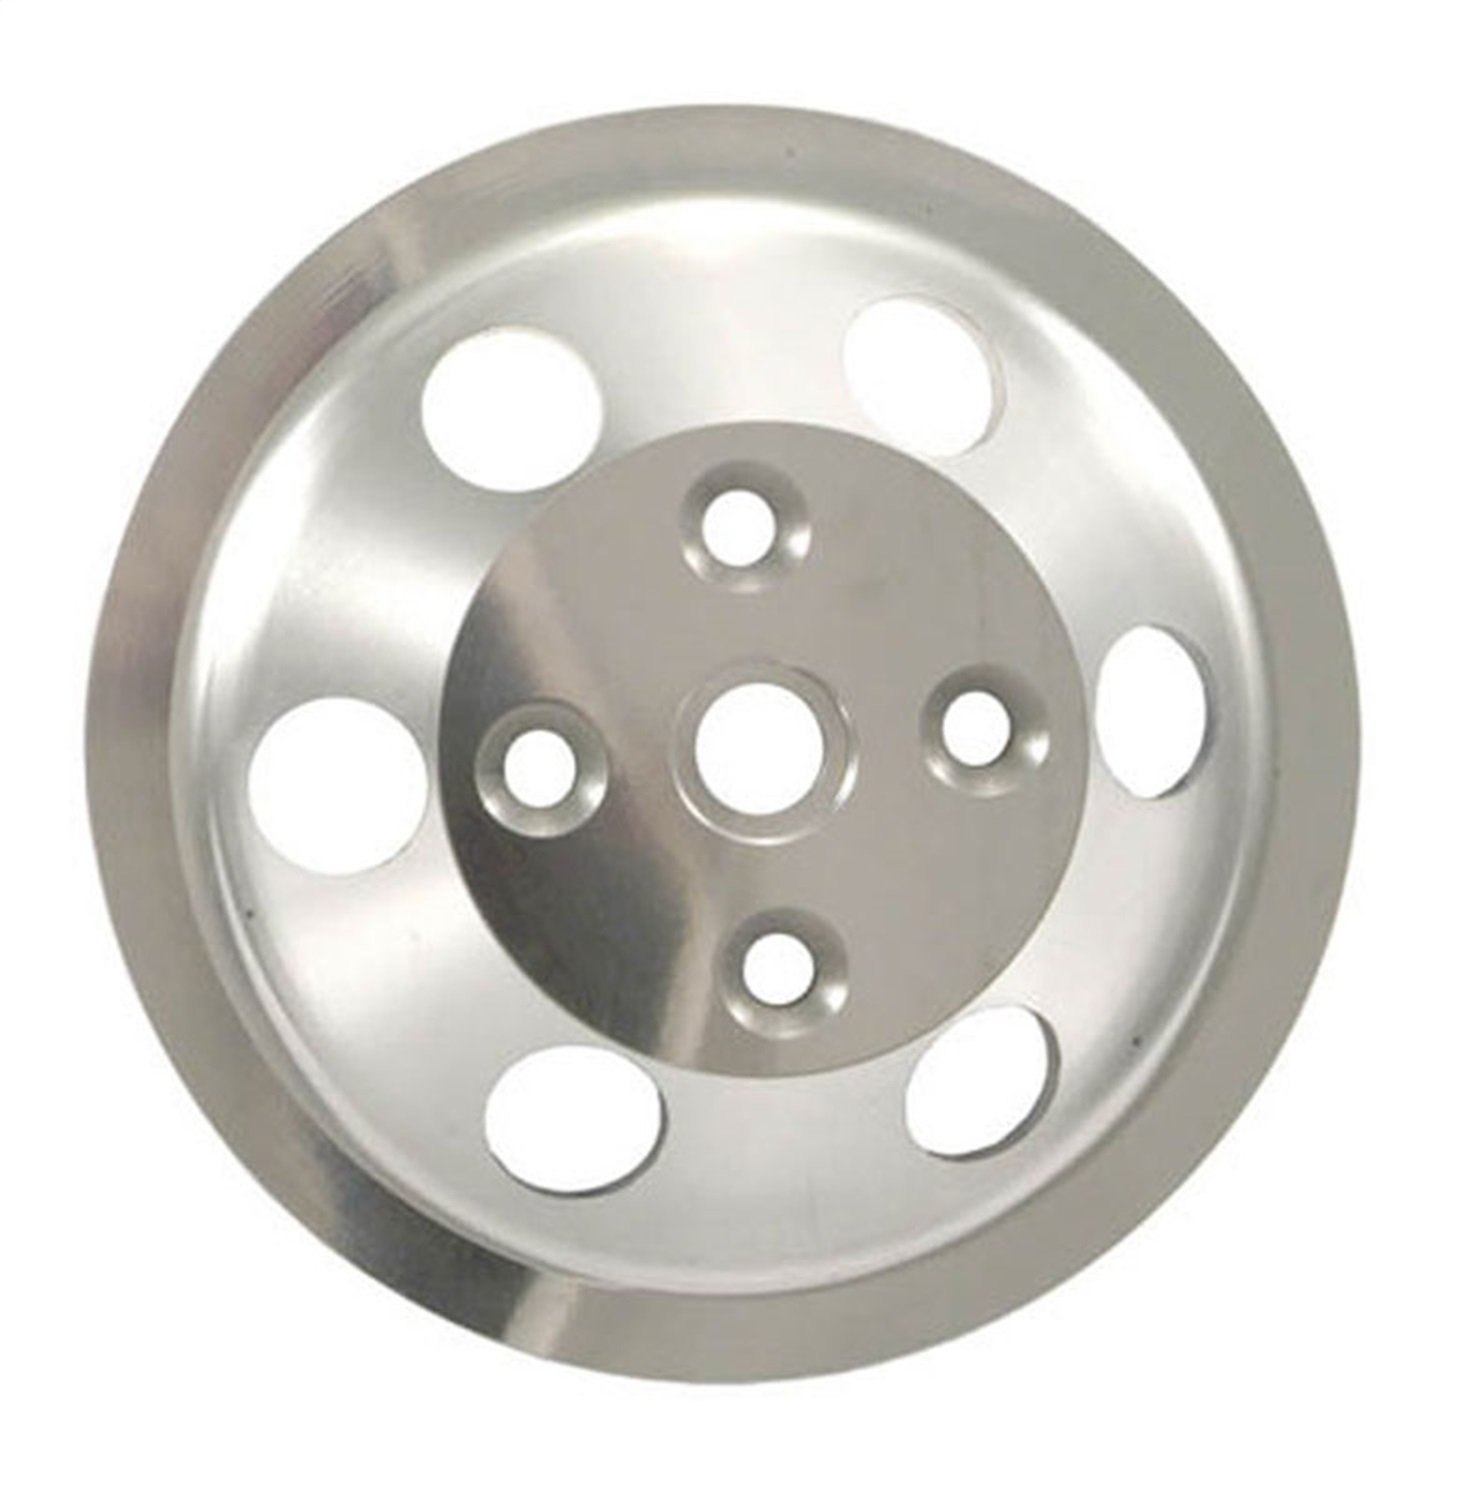 Spectre Performance 4409 Aluminum Water Pump Pulley by Spectre Performance